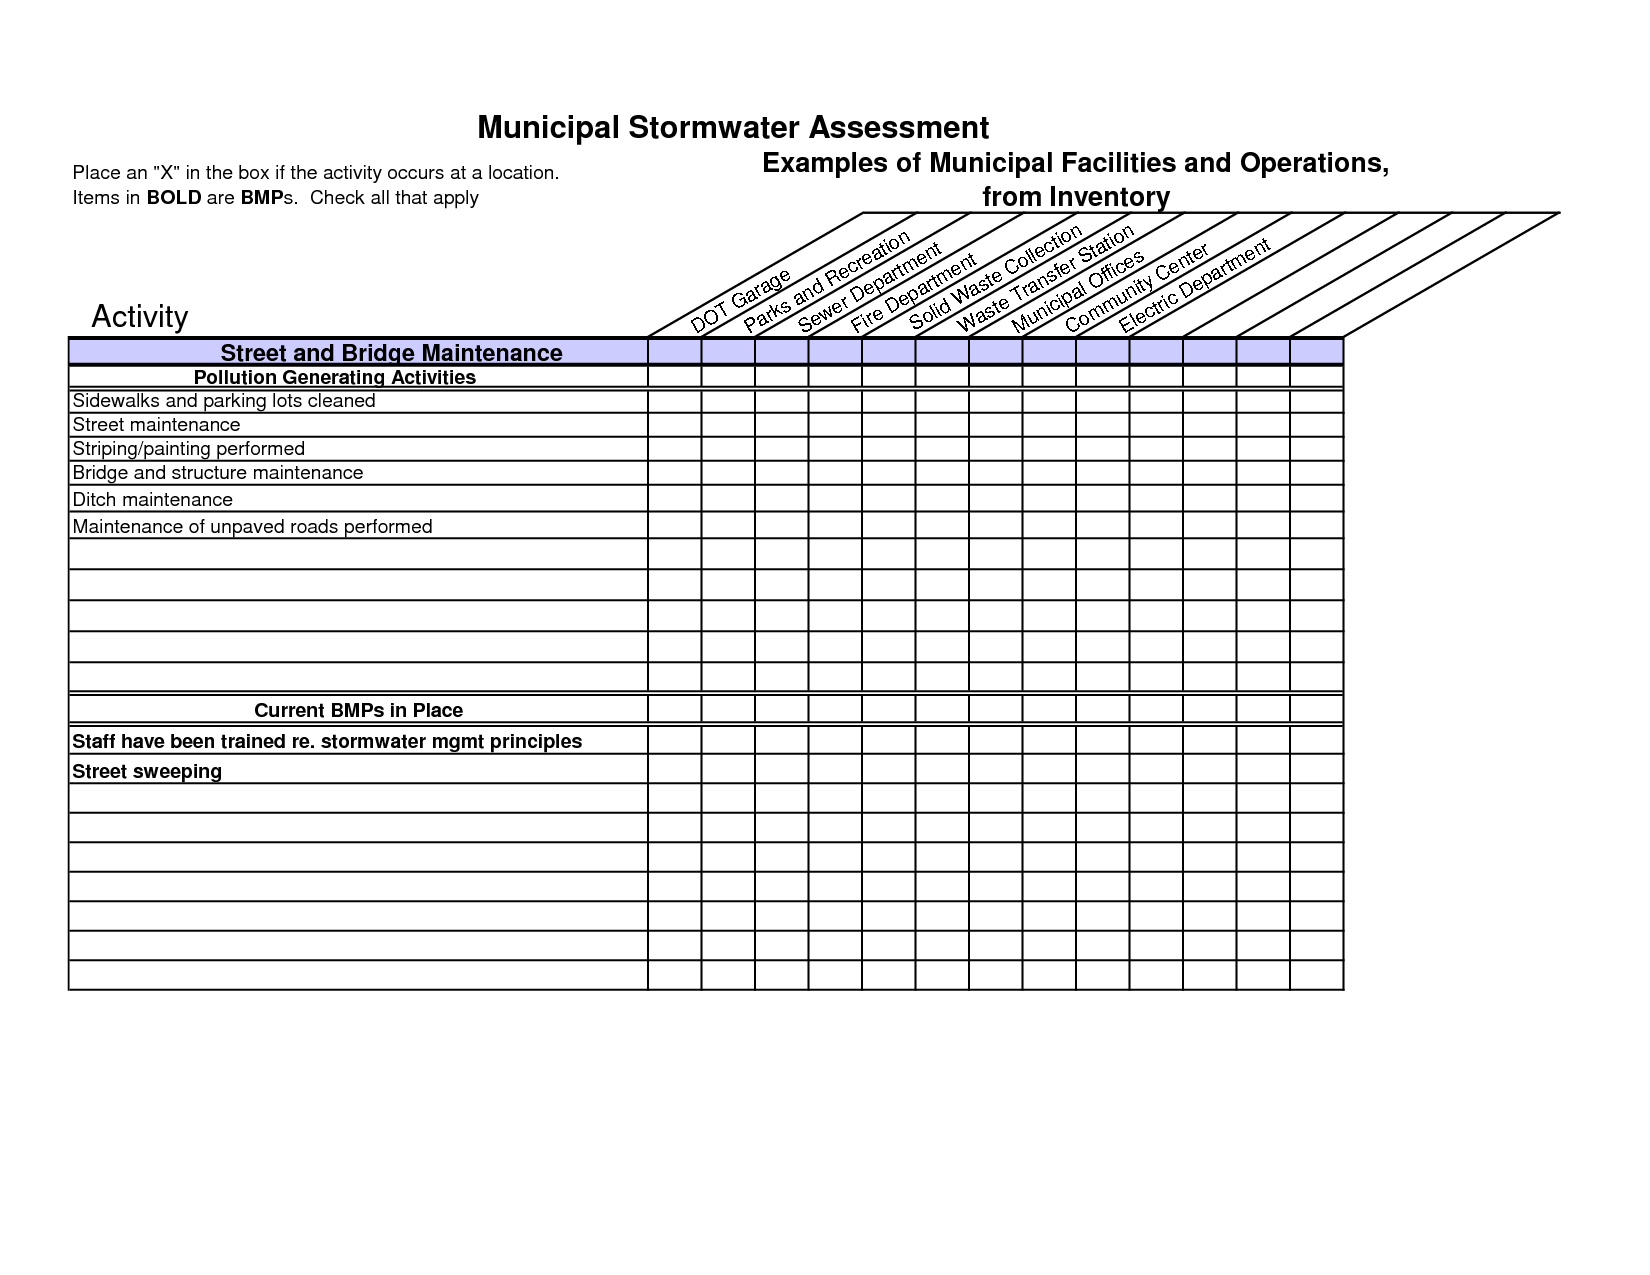 Household Inventory List Template program for a funeral – Household Inventory List Template